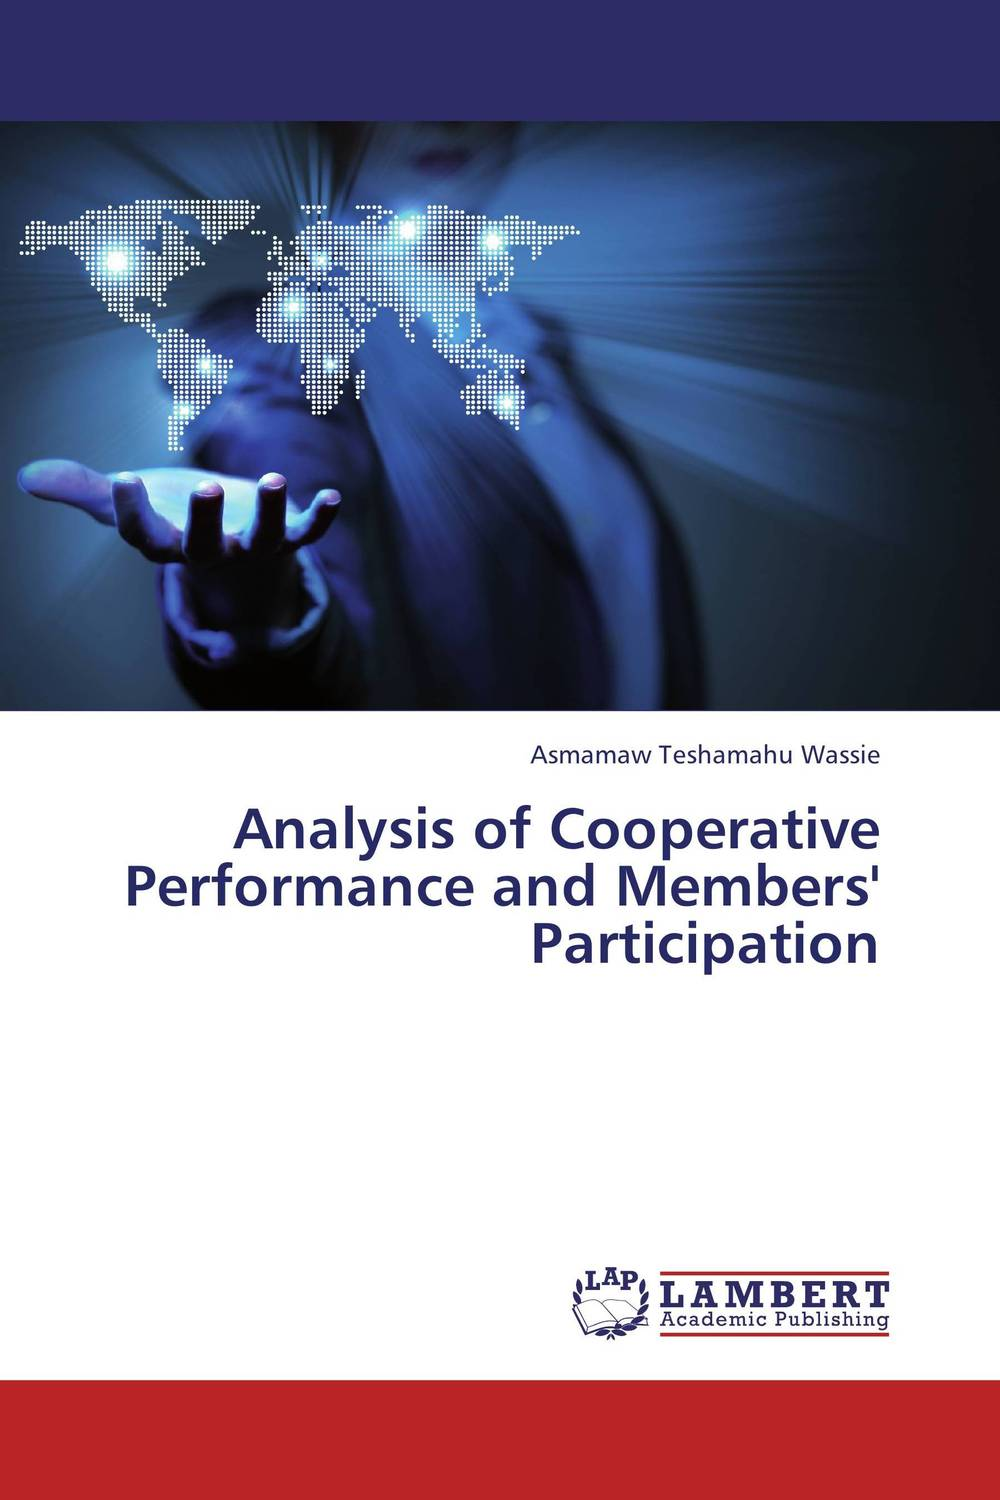 Analysis of Cooperative Performance and Members' Participation financial performance analysis